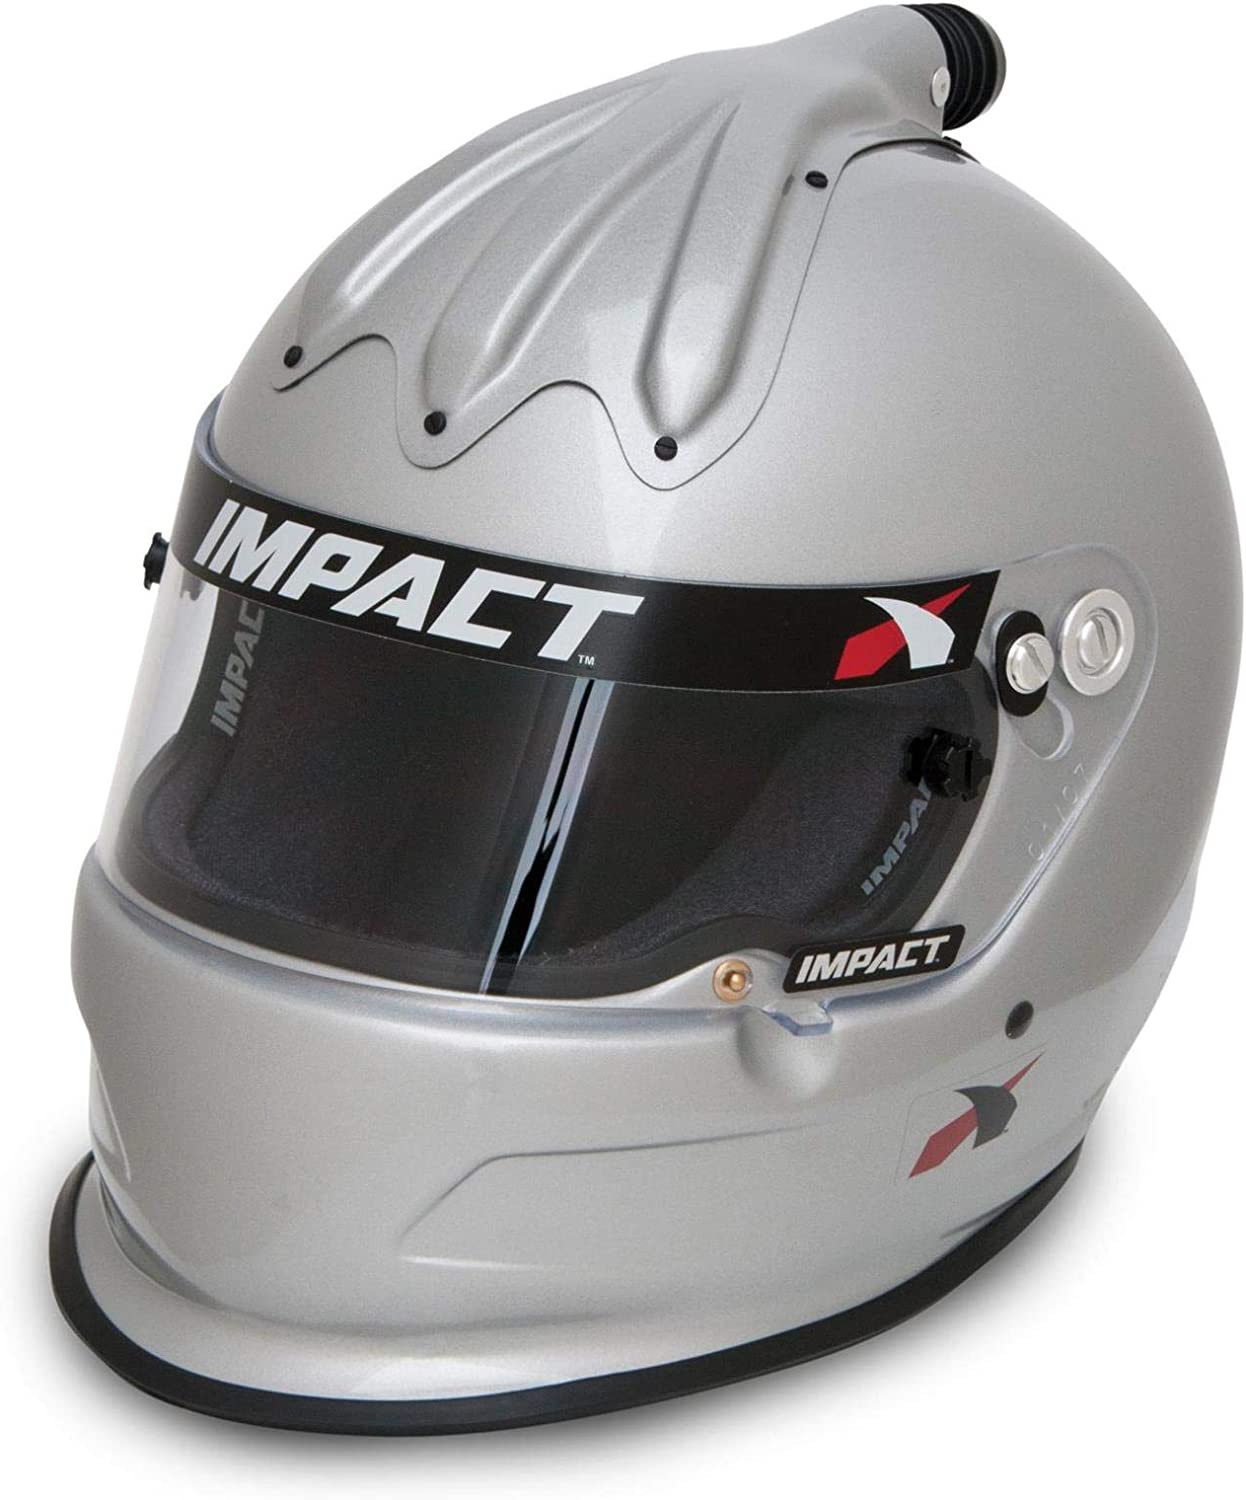 Impact Racing 17015308 Helmet - SM Charger Silver Super sold Max 71% OFF out SNELL15